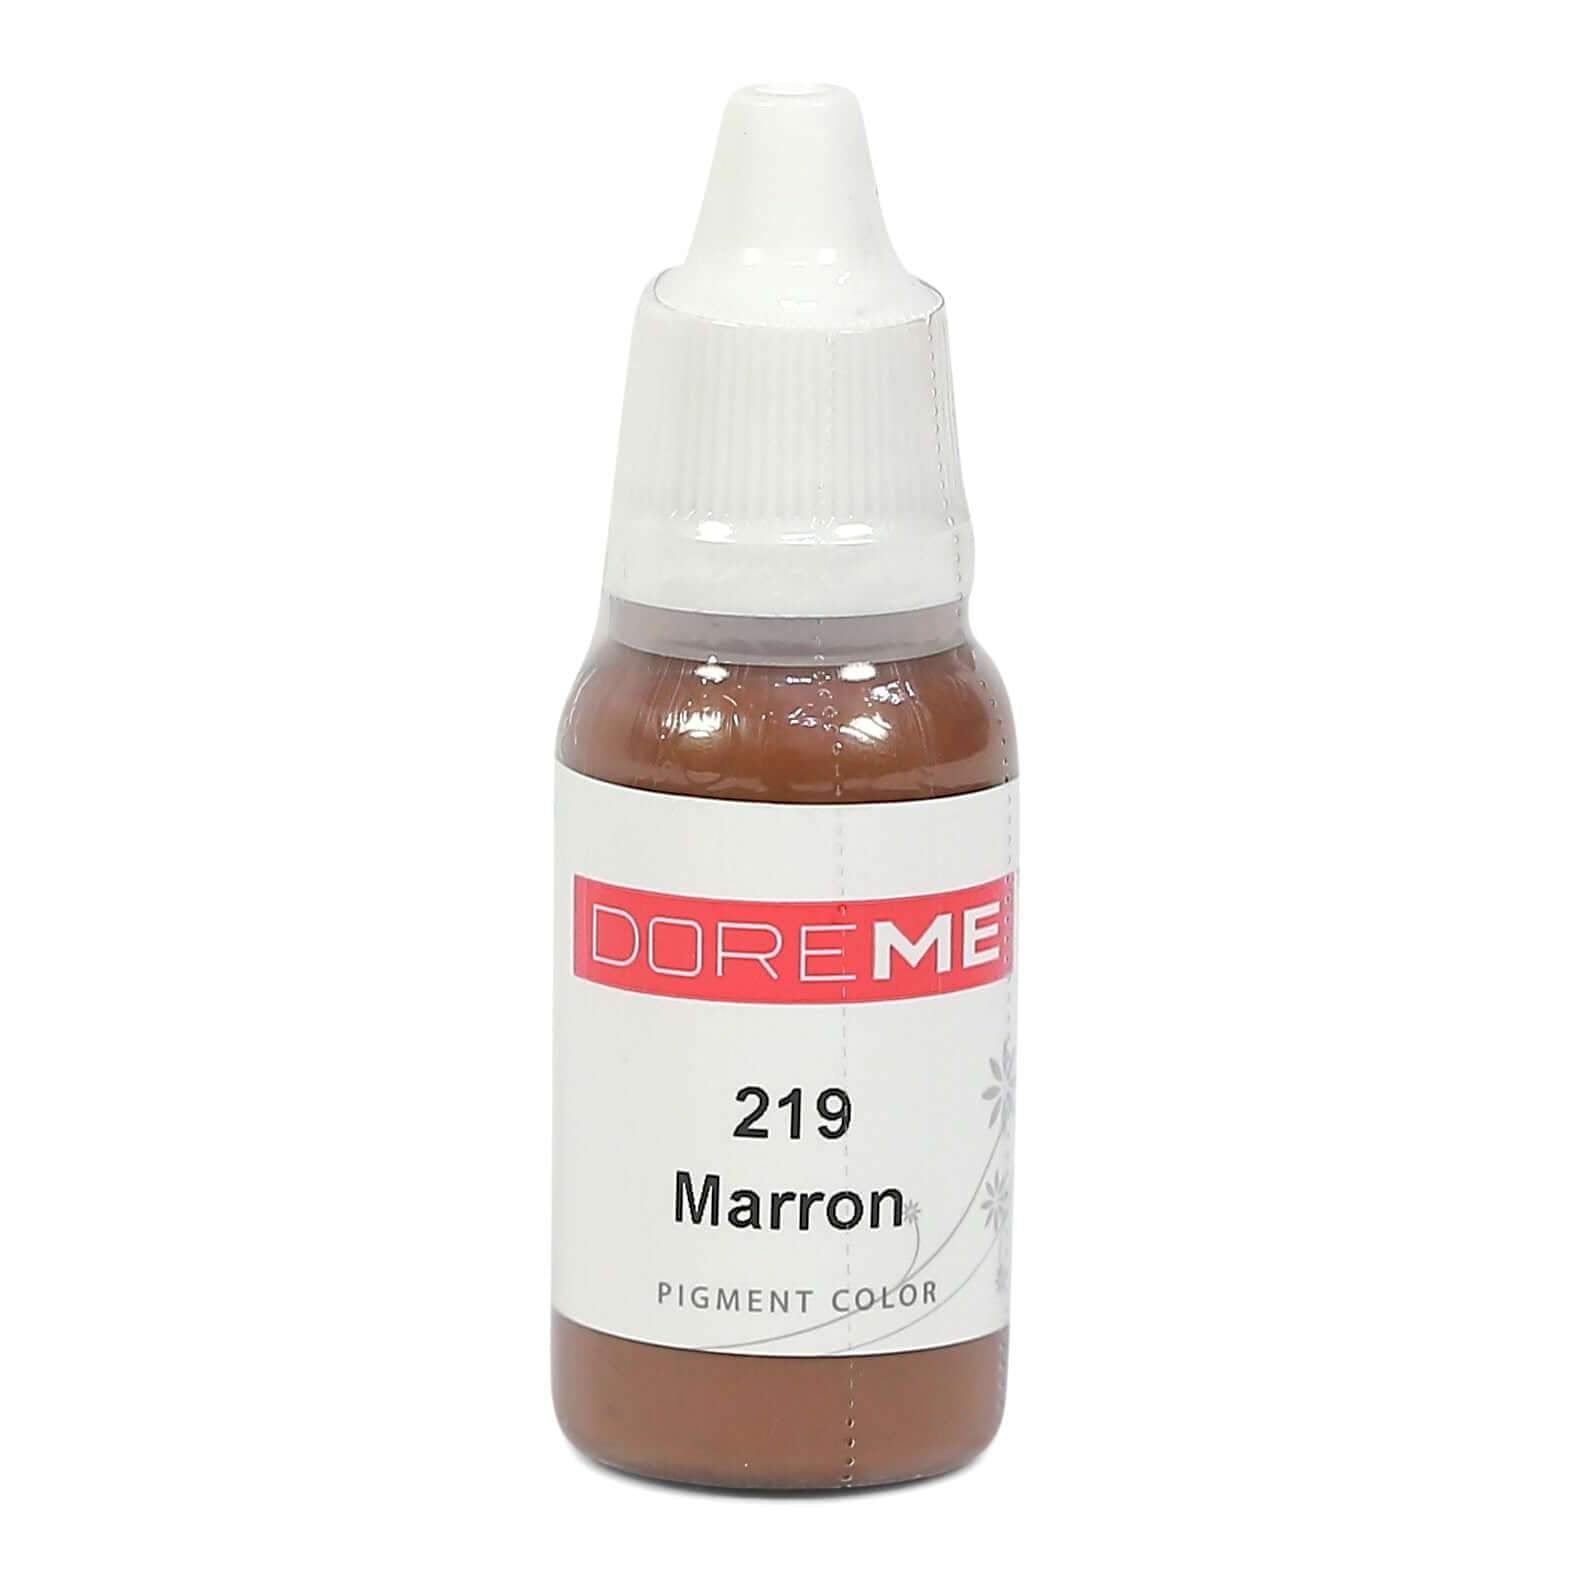 Permanent Makeup pigments Doreme Micropigmentation Eyebrow, Eyeliner, Lip Colours 219 Marron (c) - Beautiful Ink UK trade and wholesale supplier